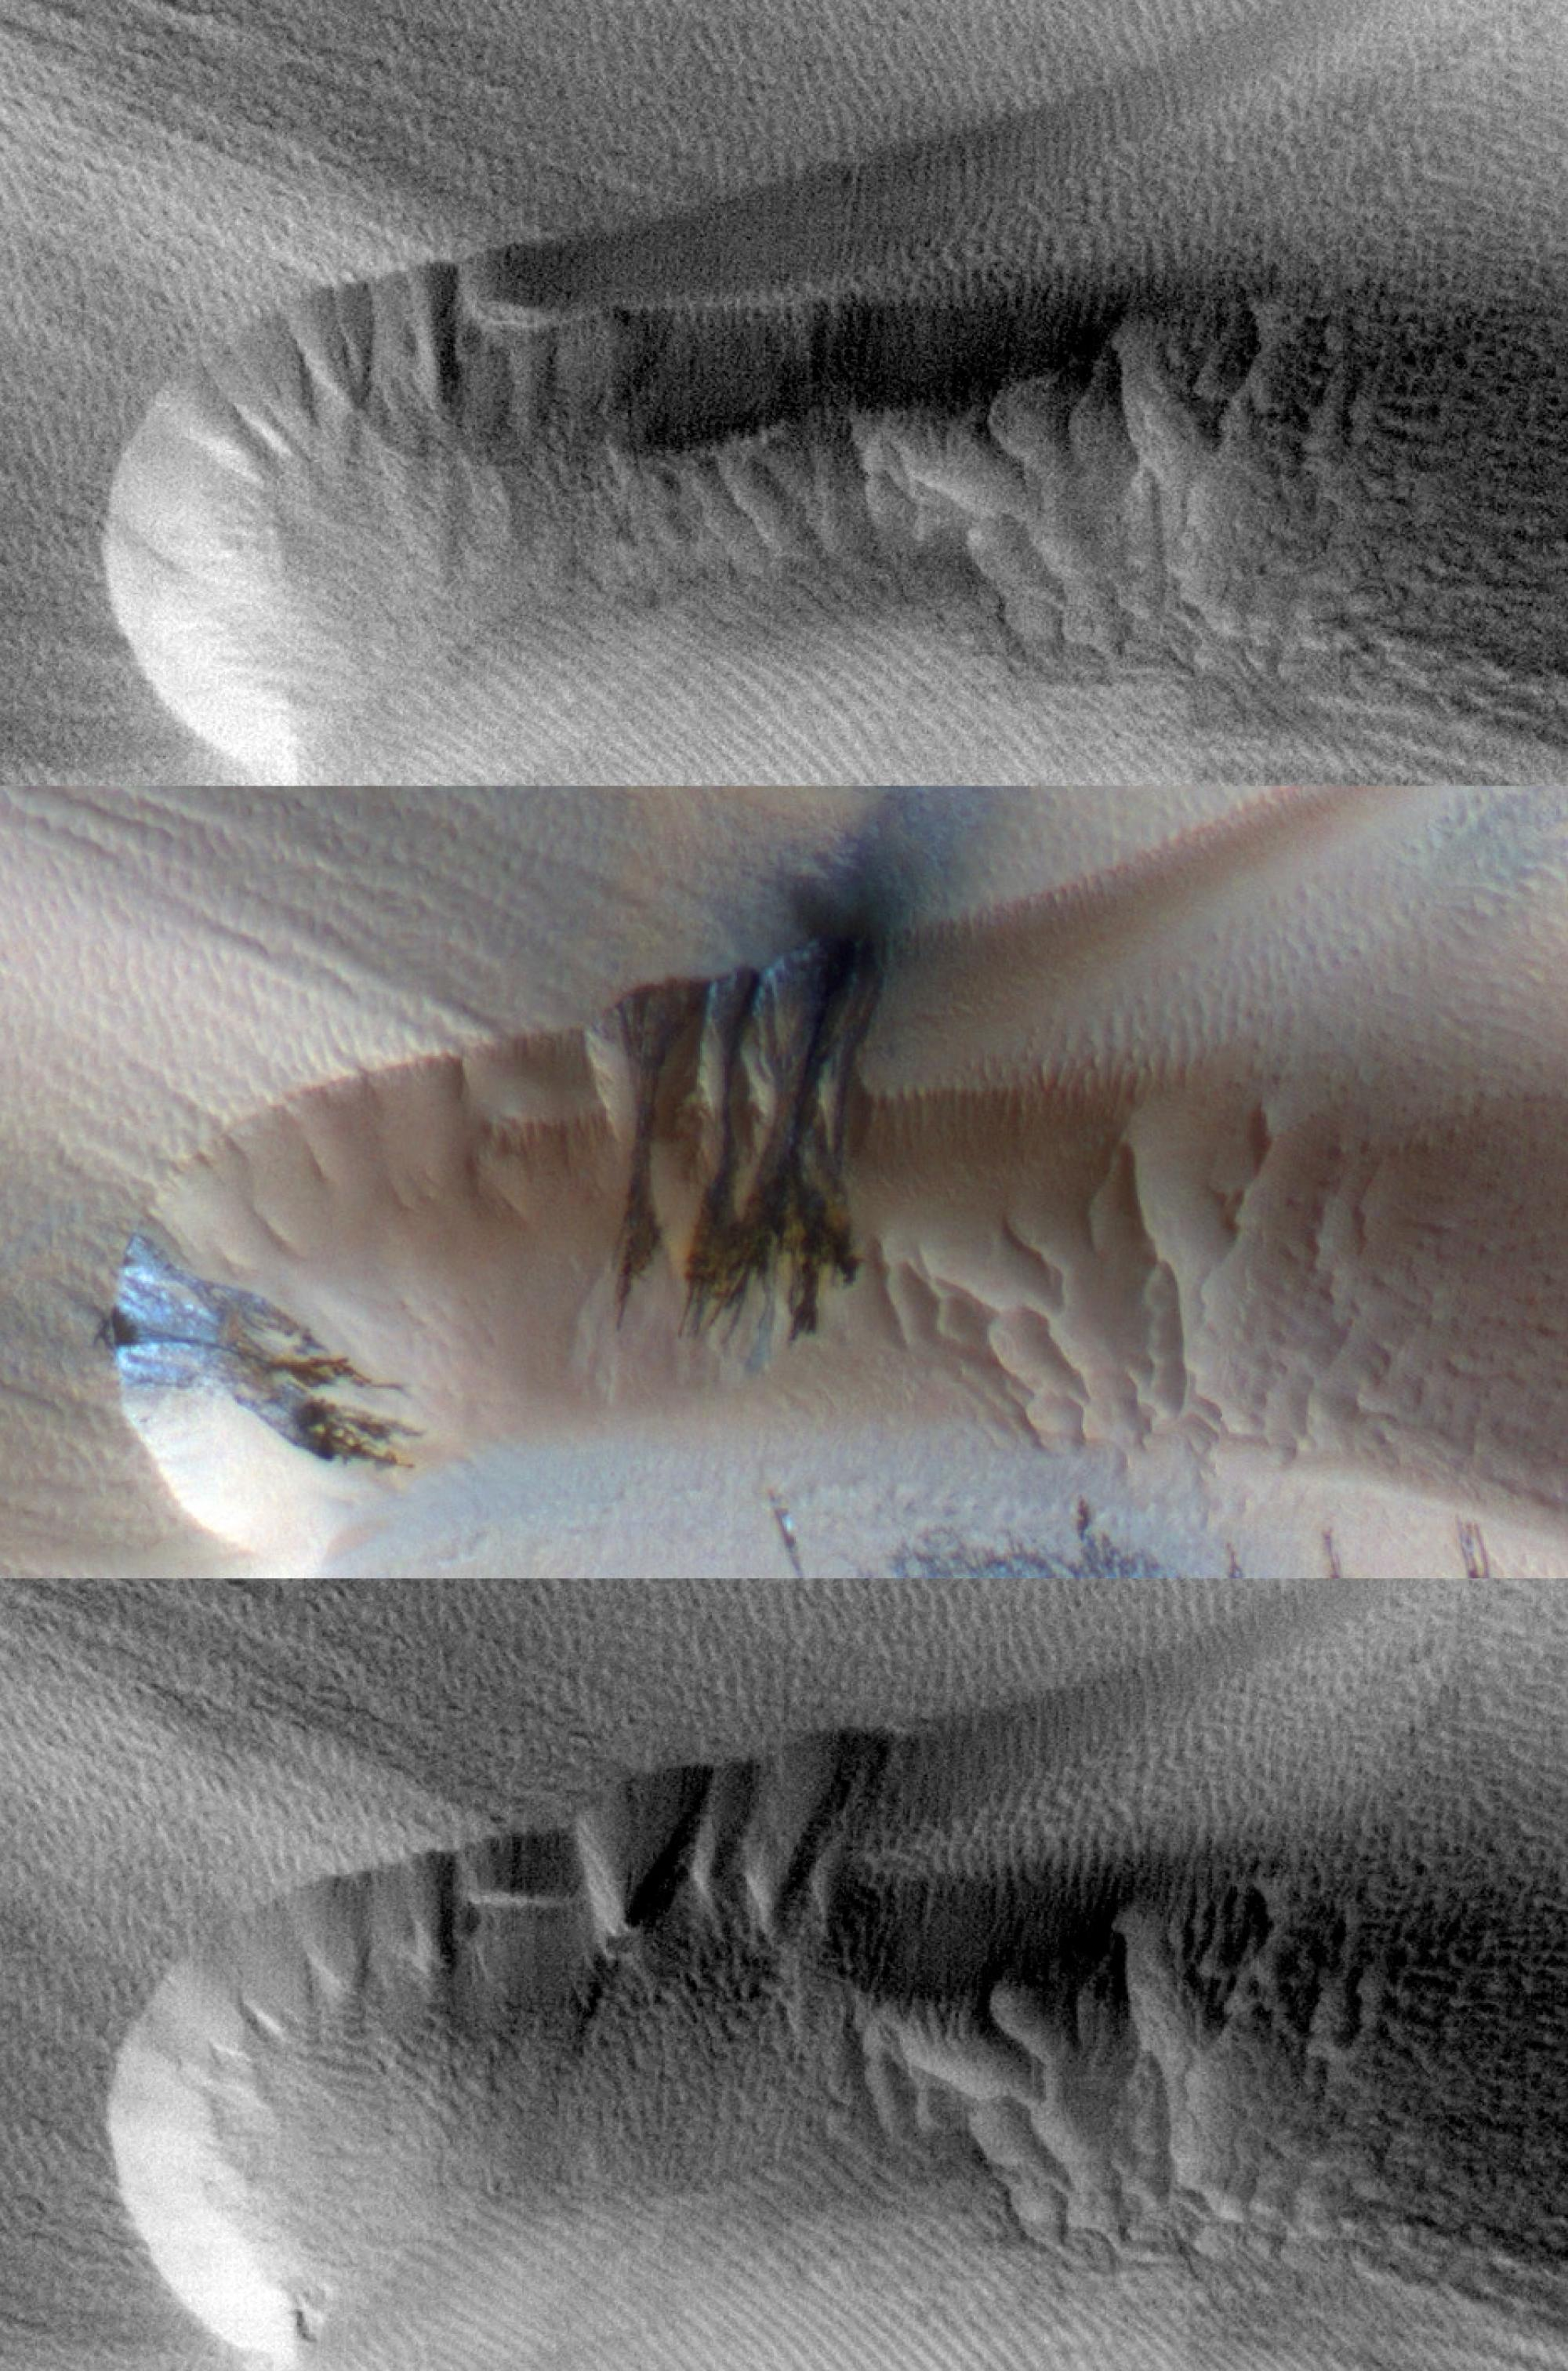 Seasonal activity in a Martian dune: Every year, a seasonal polar cap of condensed carbon dioxide  covers dune fields at high latitudes. Spring found the ice changing from solid to gas, causing sand to avalanche down the dune . The following summer, the i